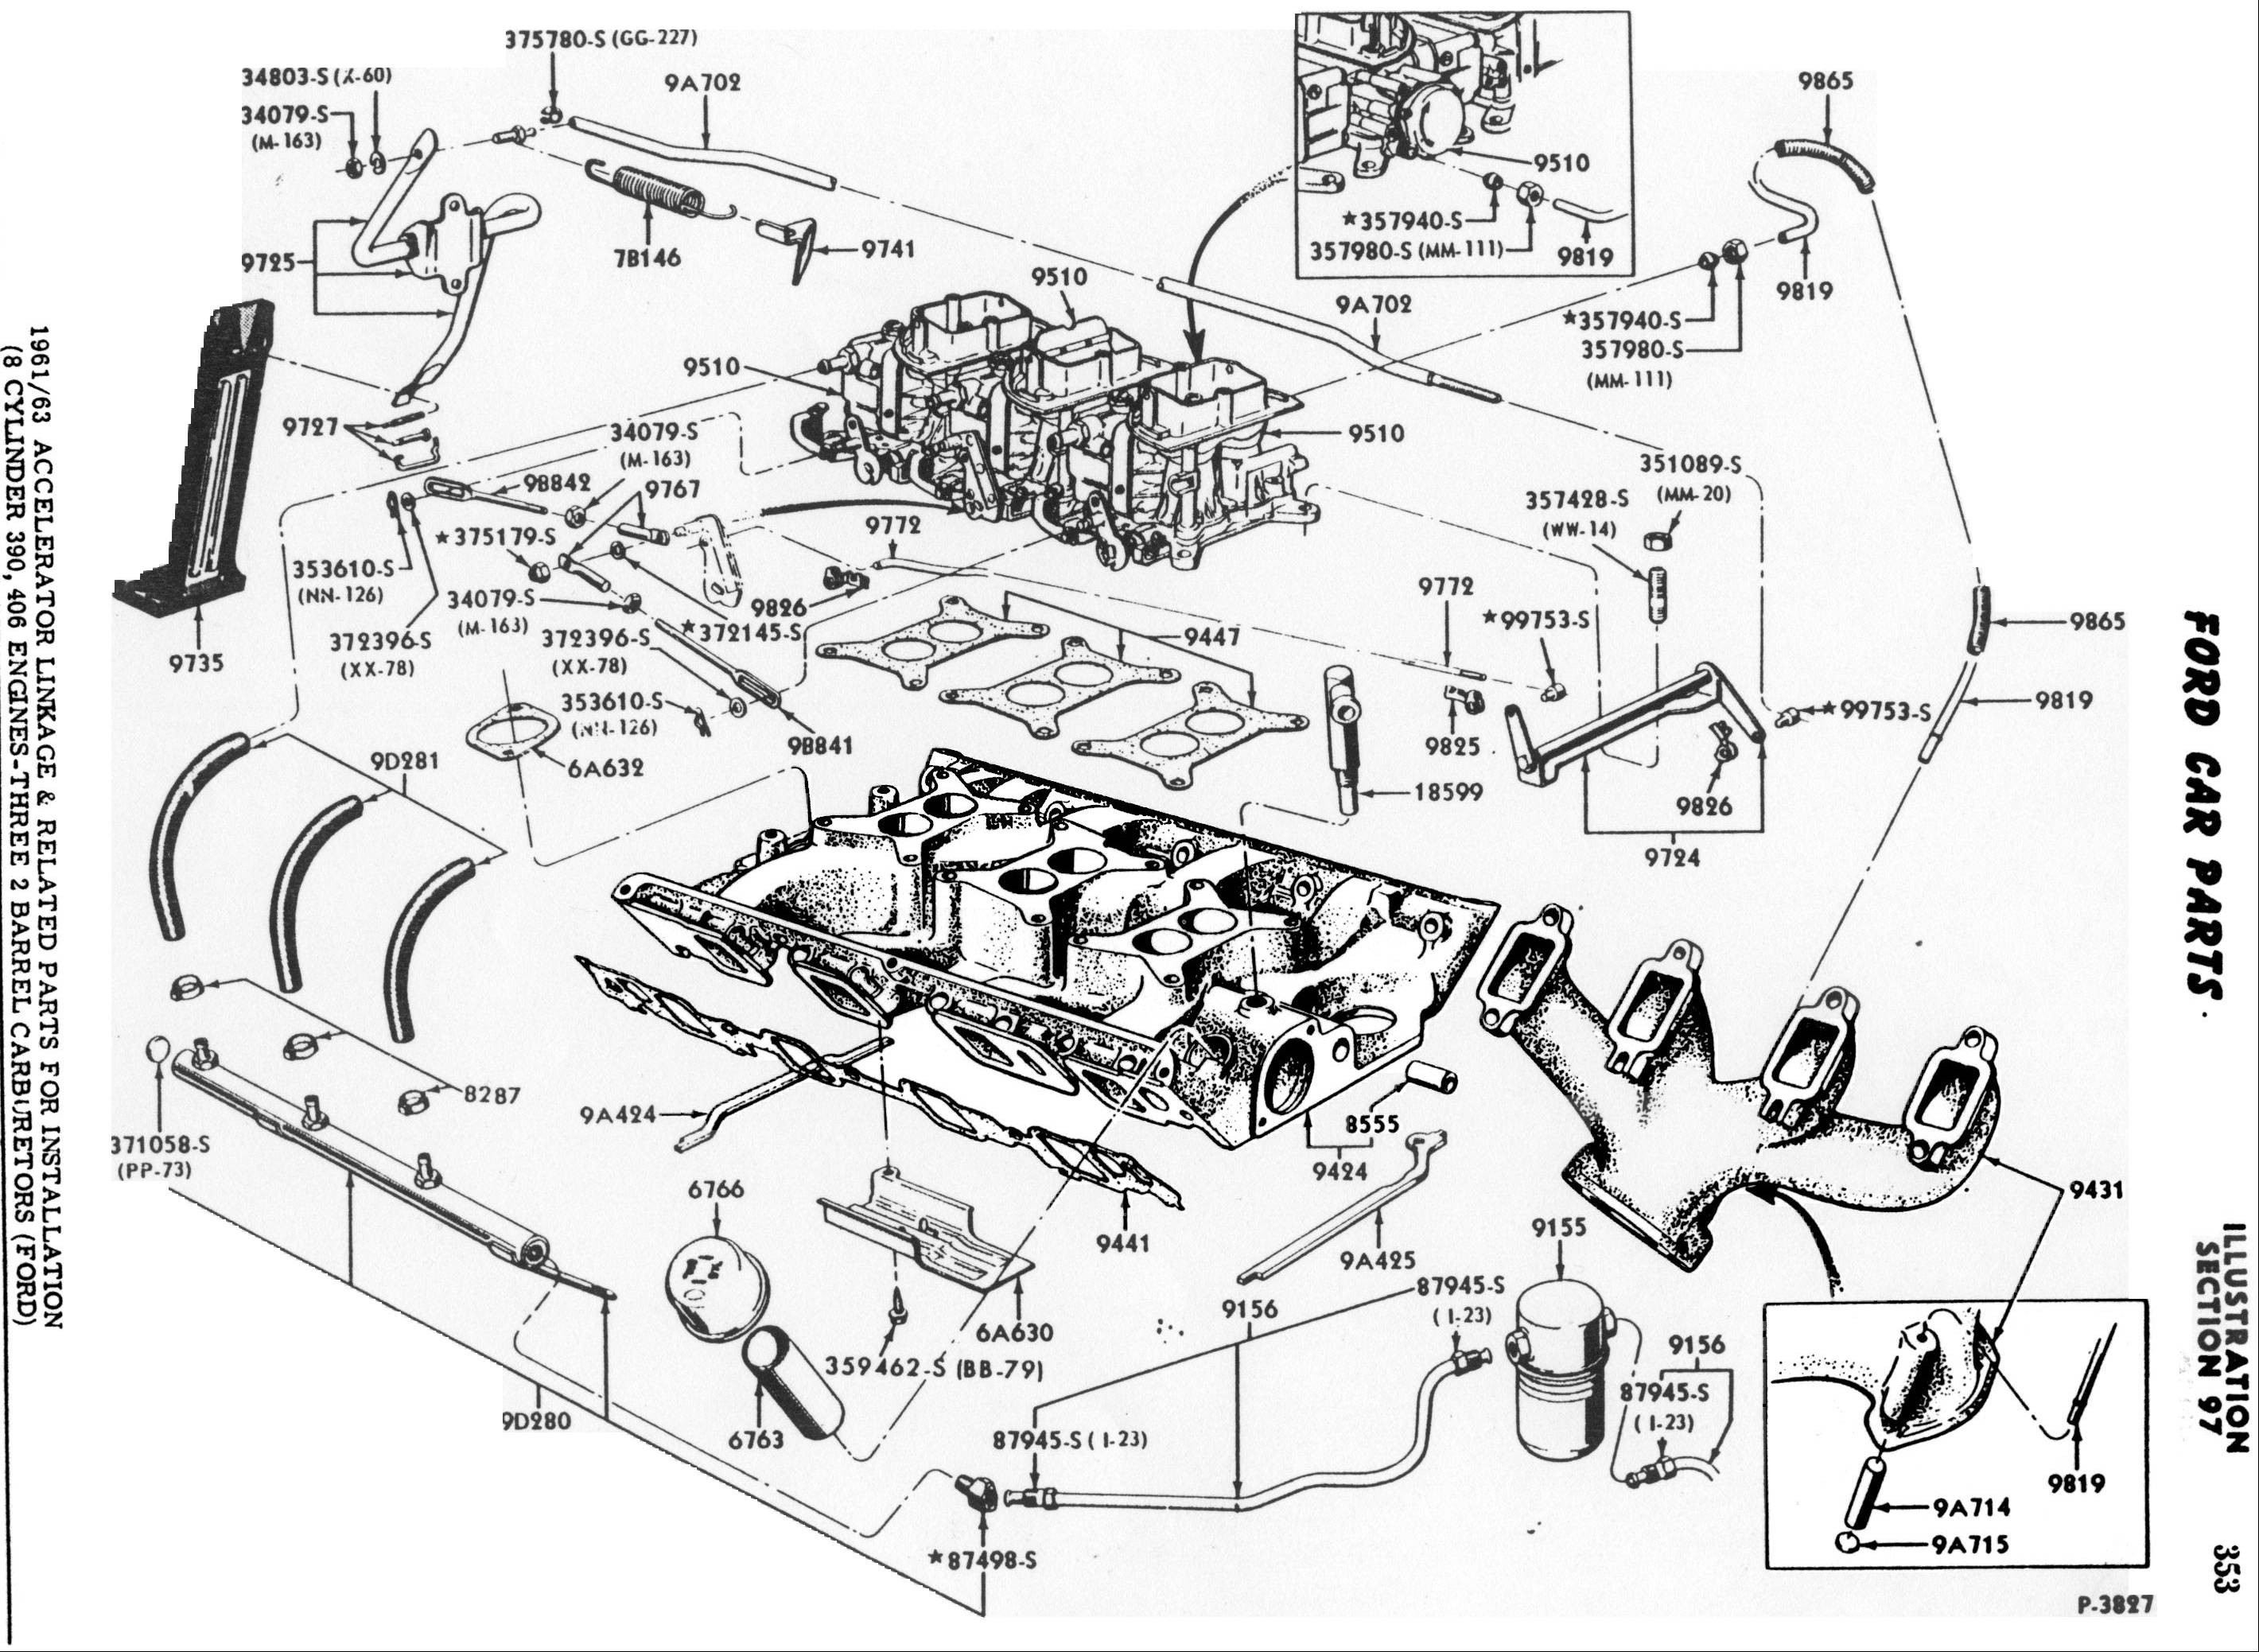 1972 Ford Maverick Wiring Diagram. Ford. Auto Wiring Diagram